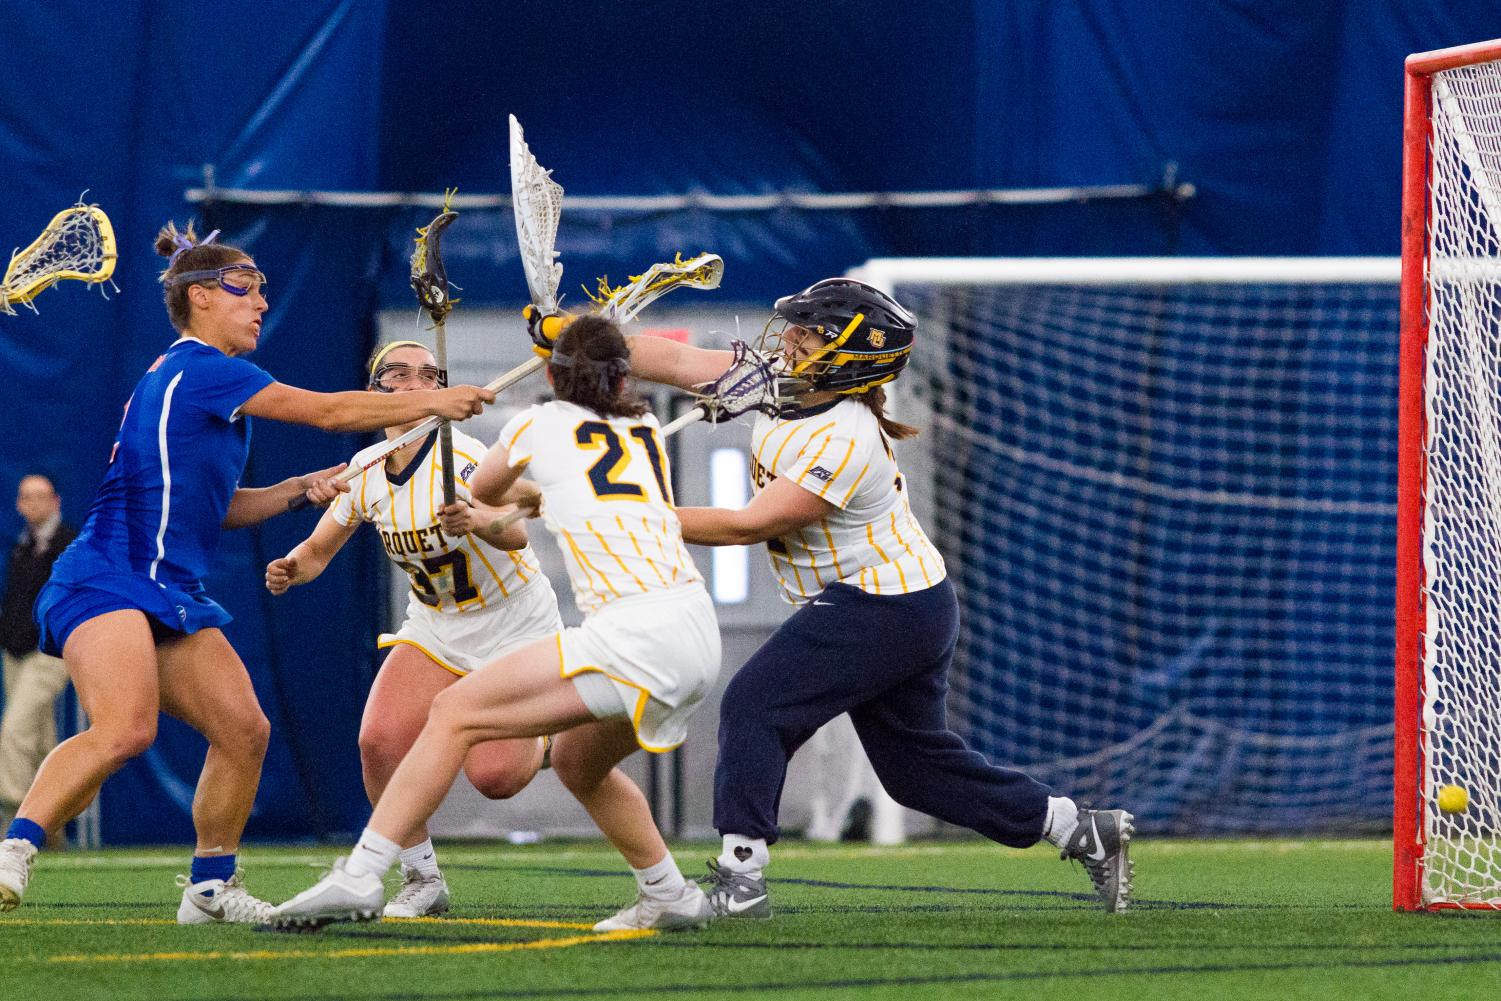 Julianna Horning has been in goal for over 81 percent of Marquette's total minutes this season.